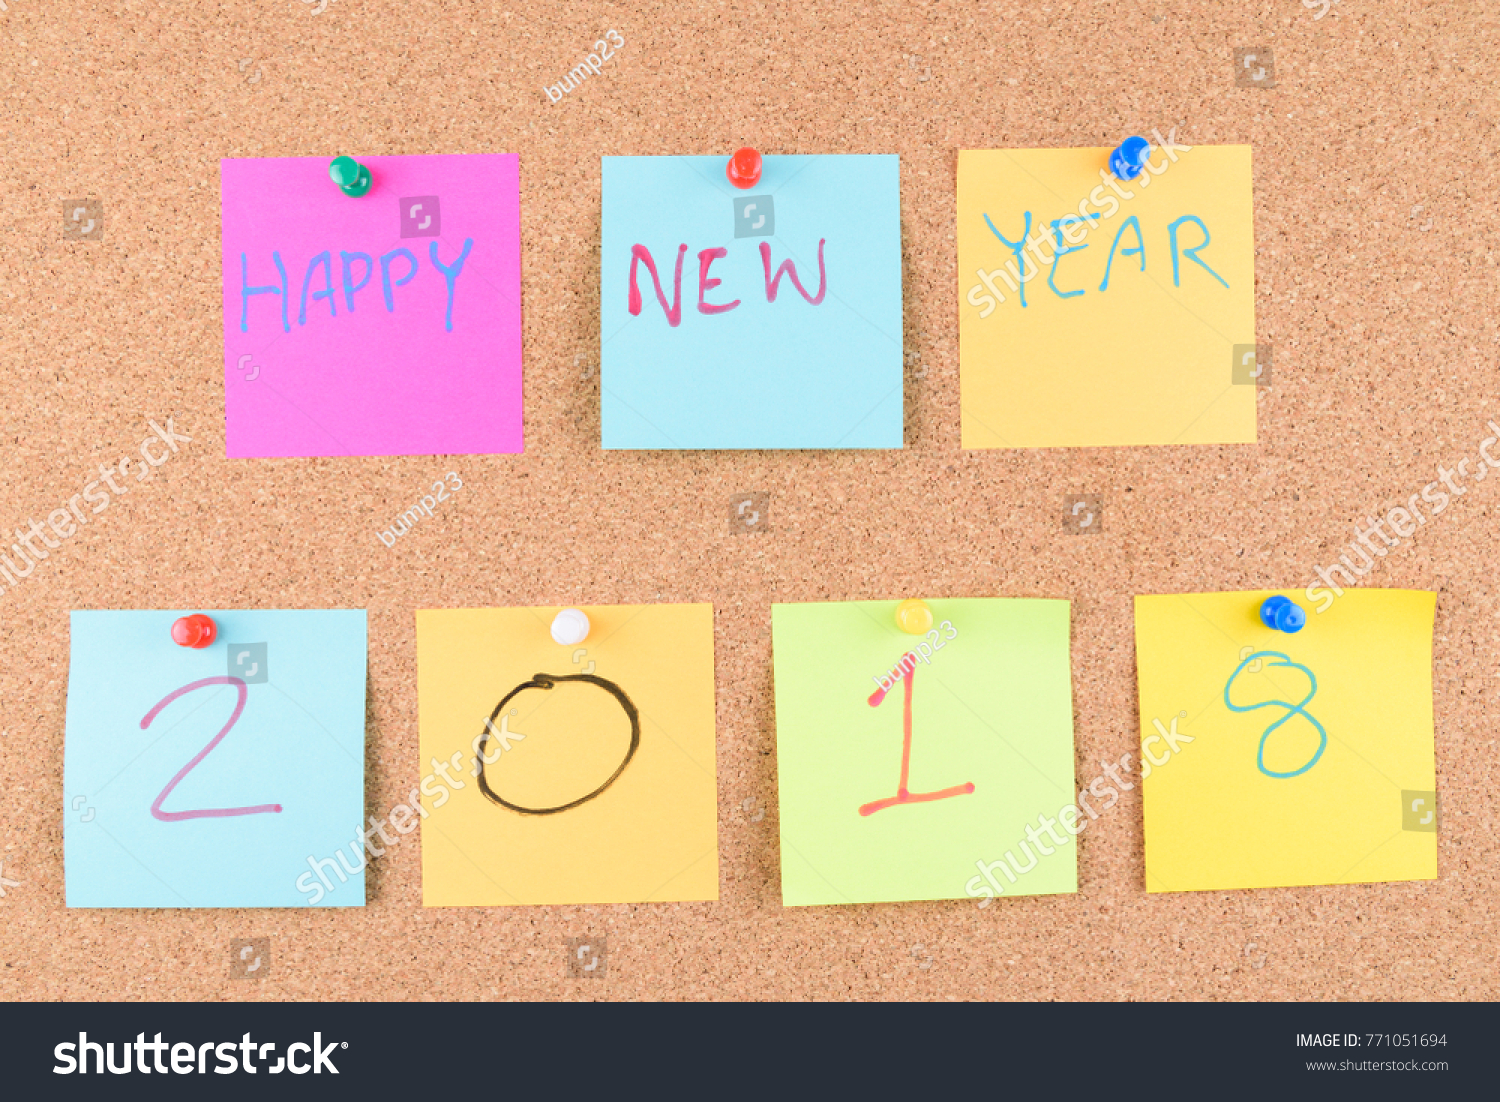 Concept New Year Greetings With Handwriting Stock Photo Royalty